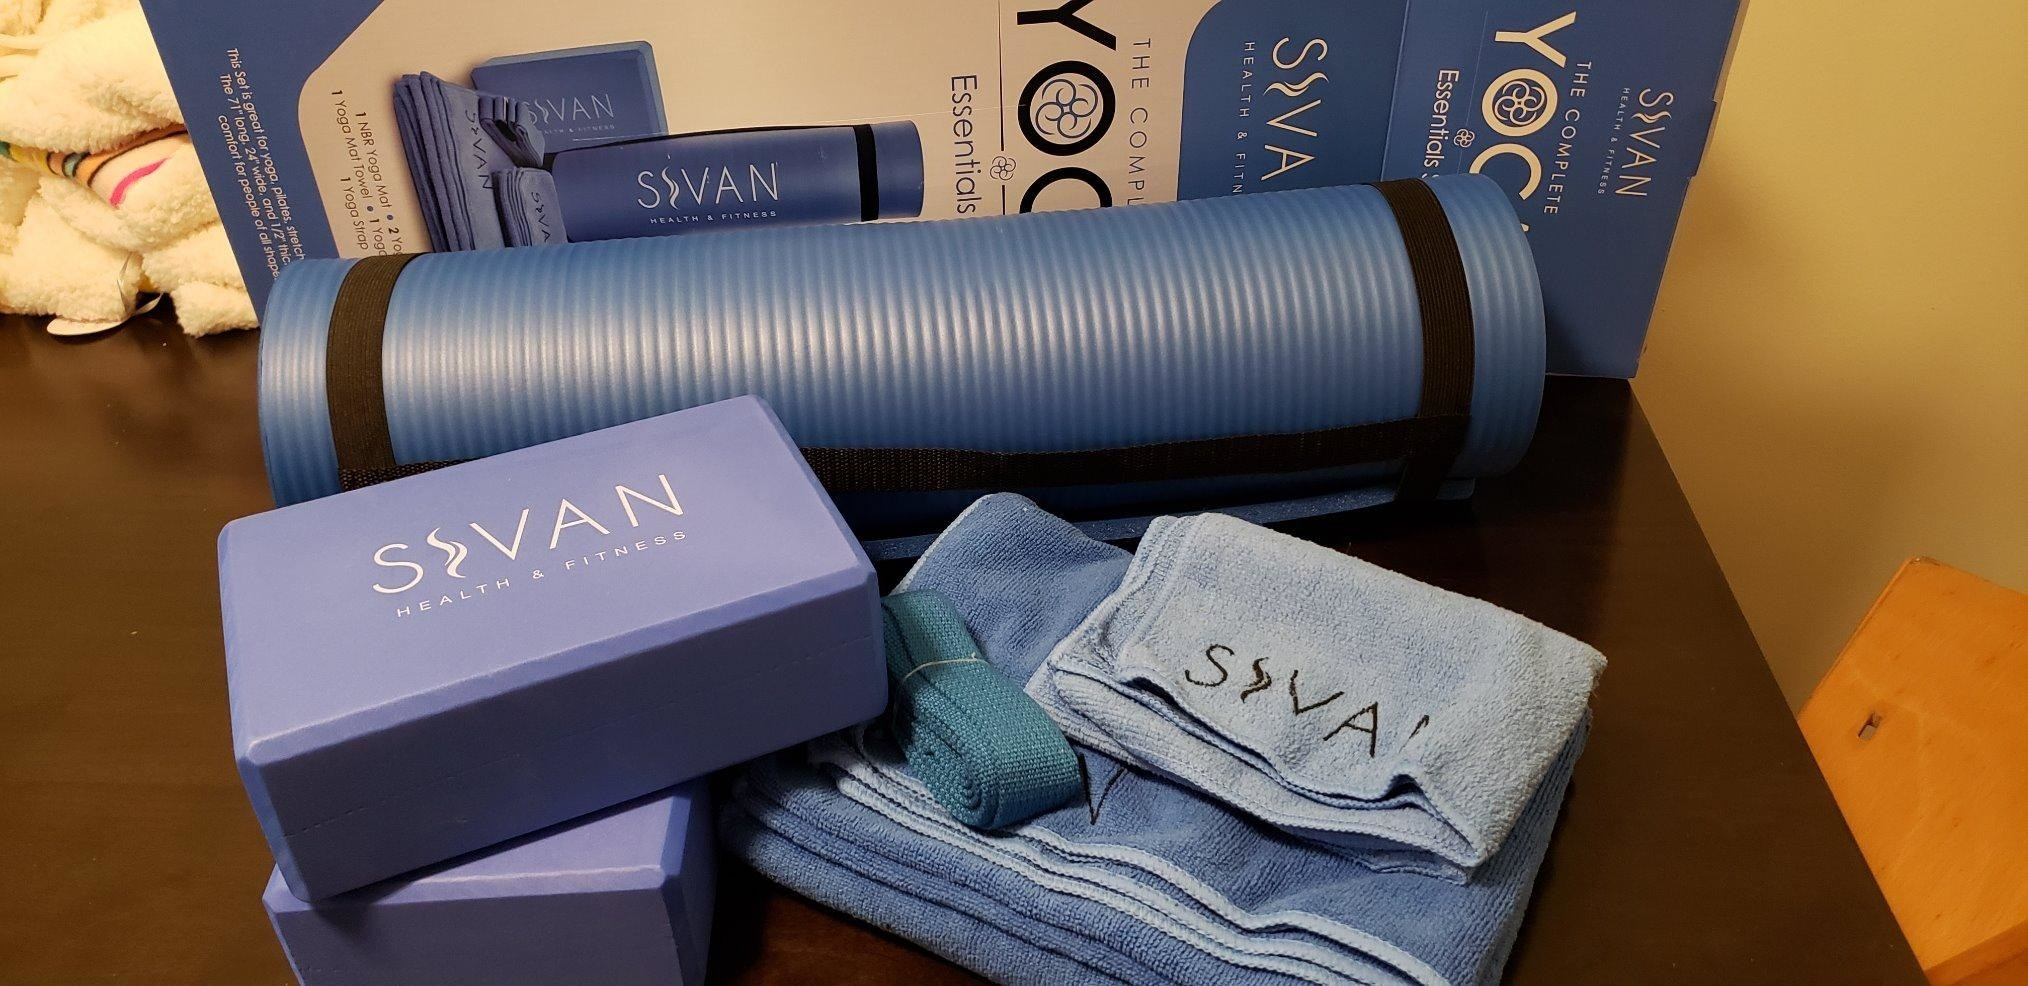 reviewer image of the sivan 6-piece yoga set on a table